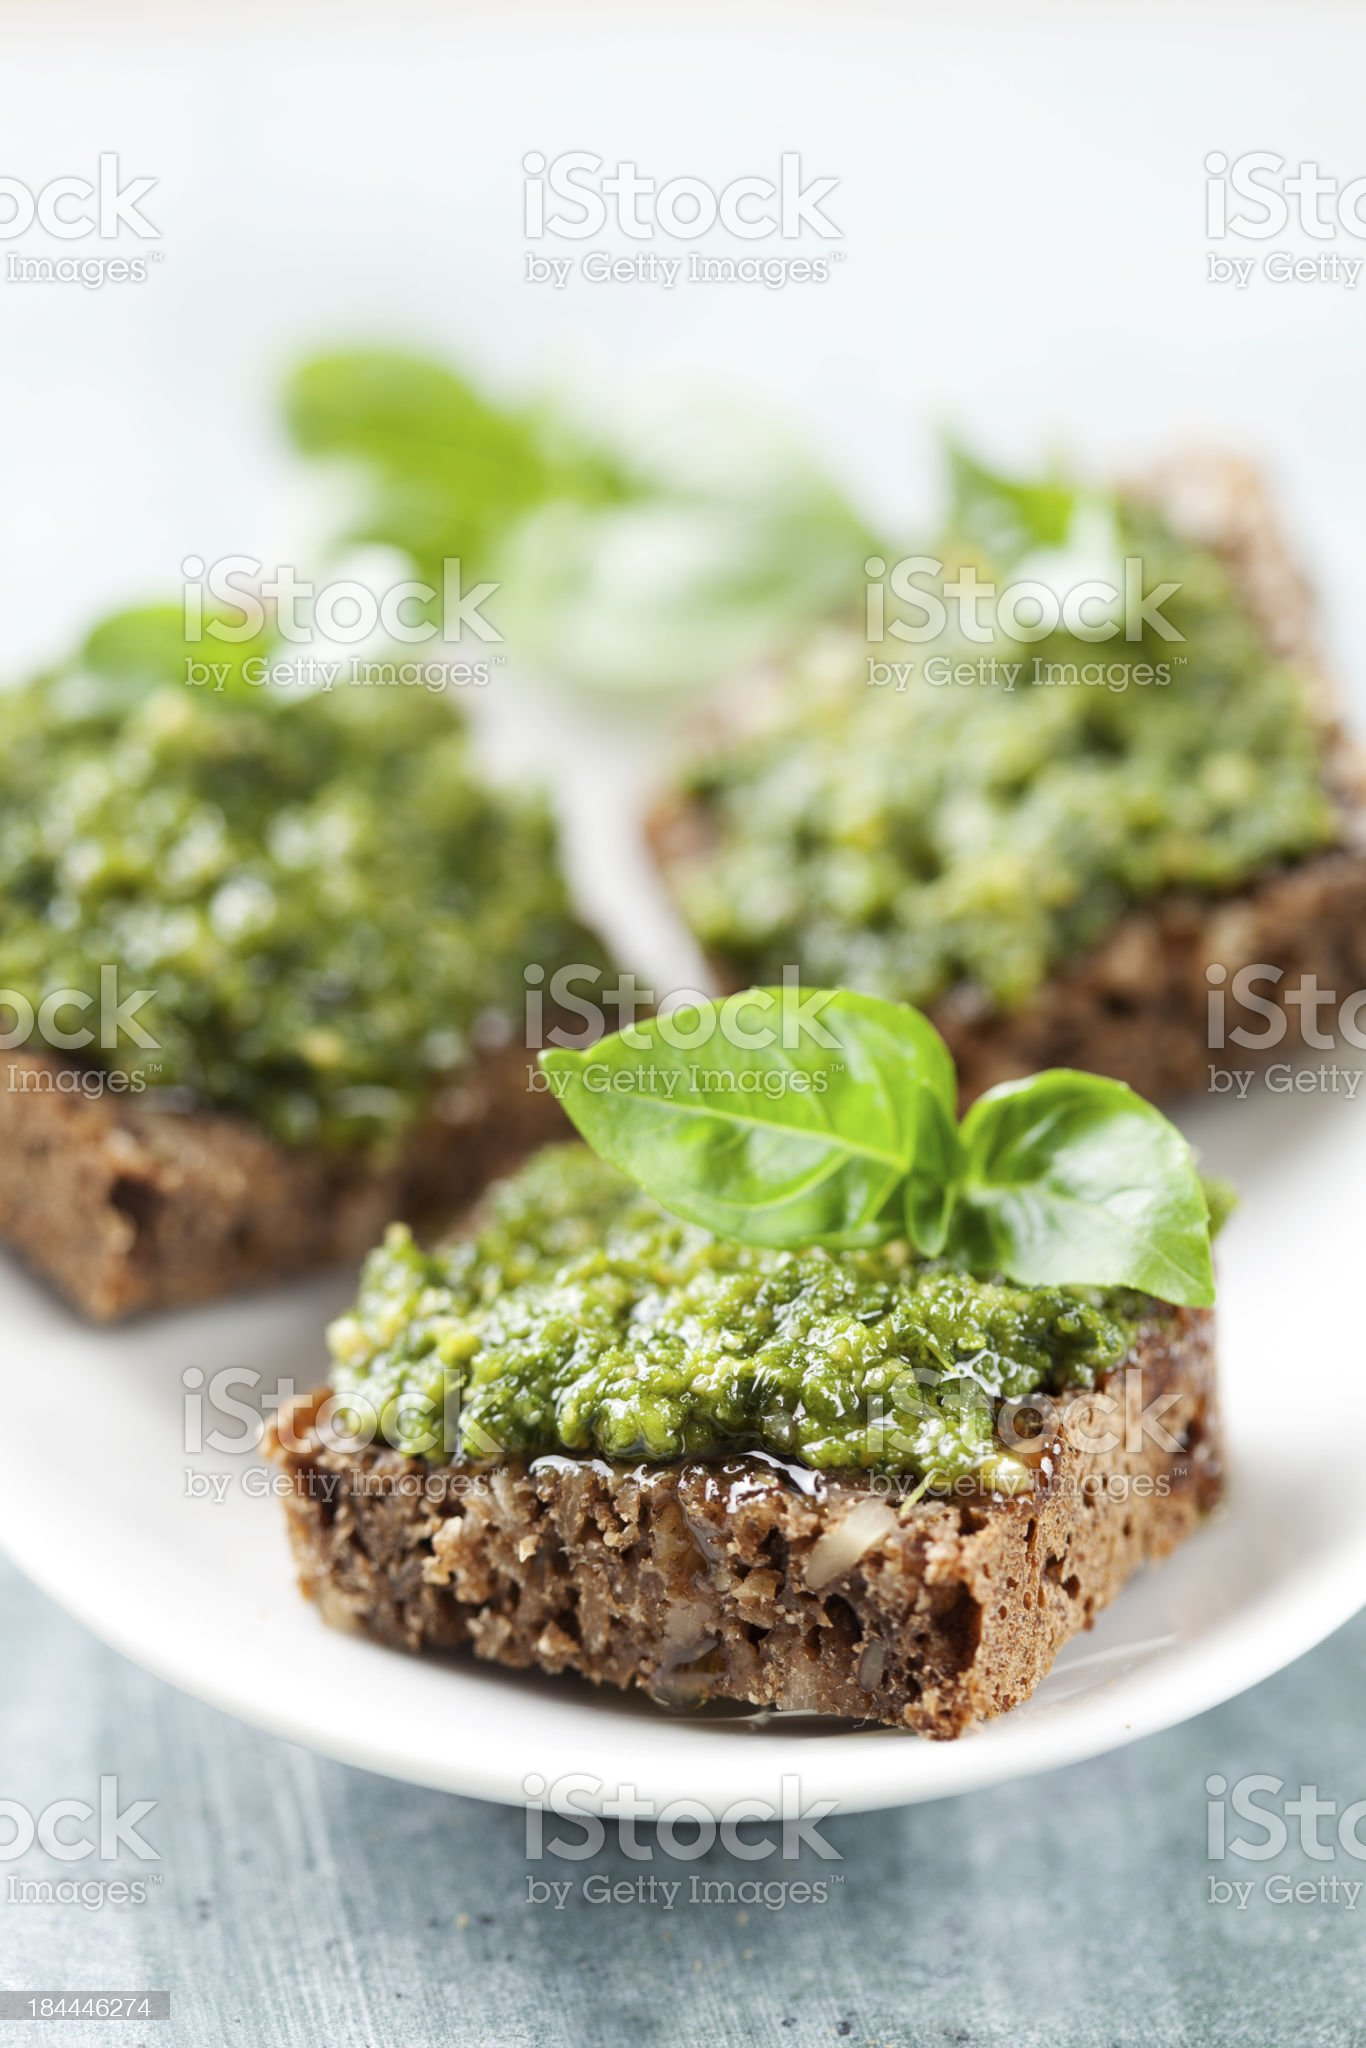 antipasti royalty-free stock photo